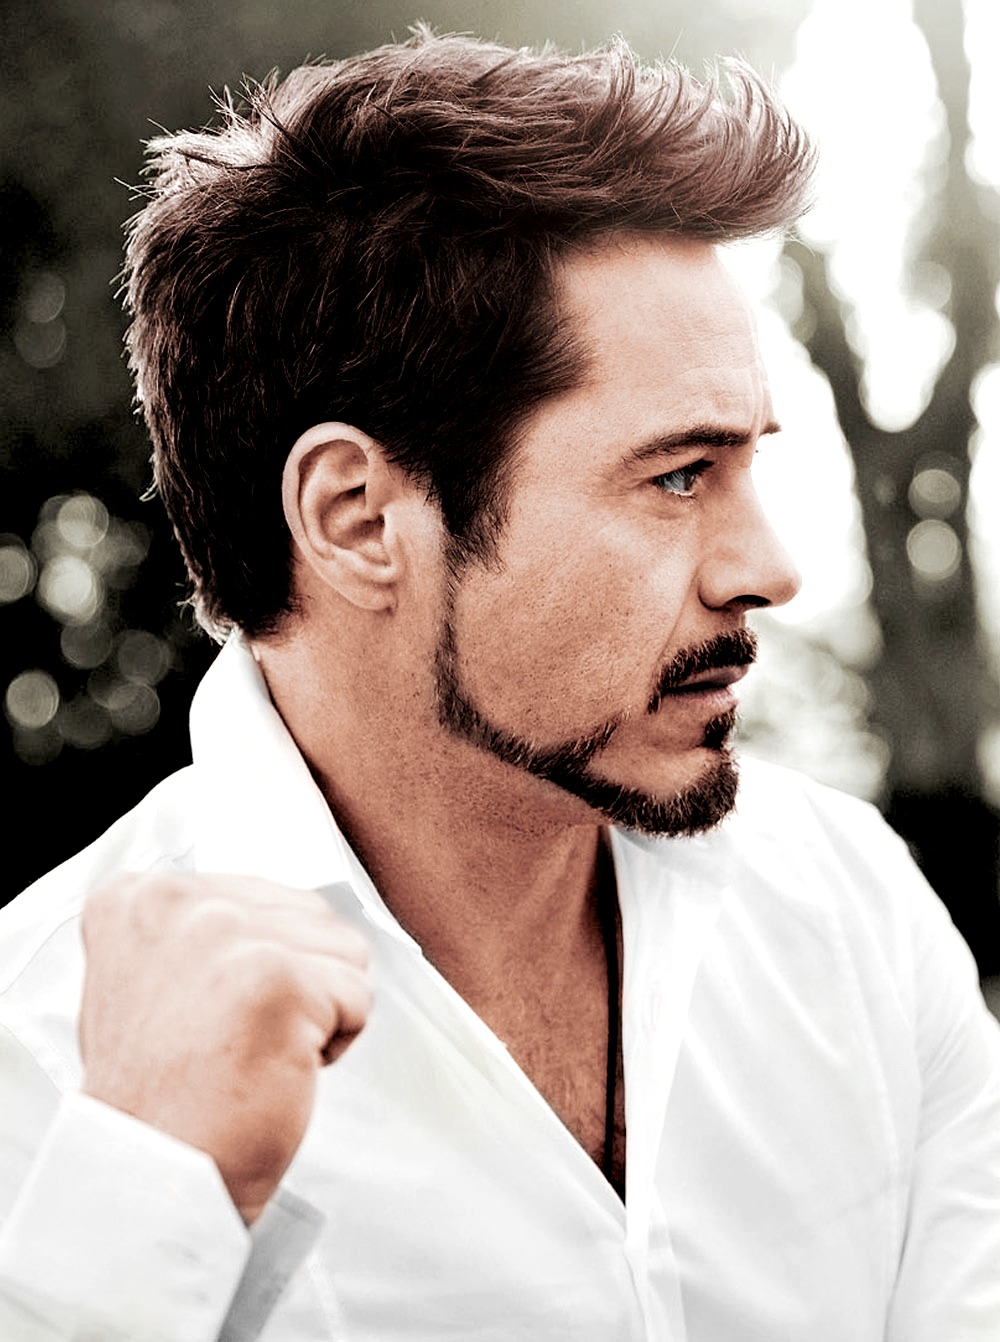 Robert Downey Jr Images Rd Hd Wallpaper And Background